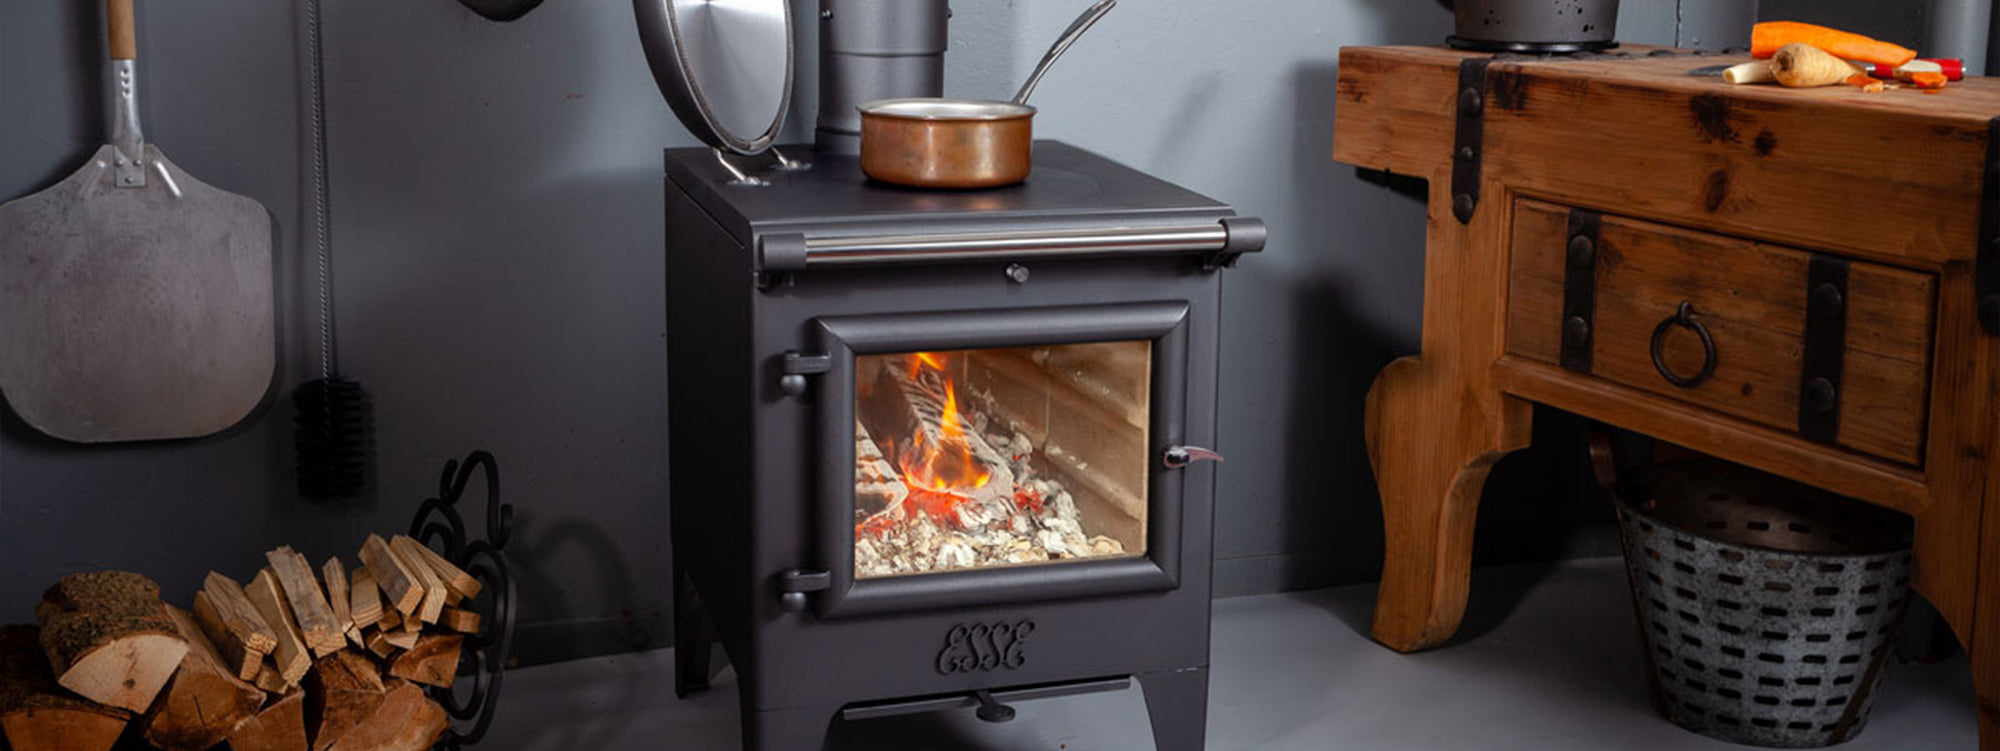 Installation of your new stove